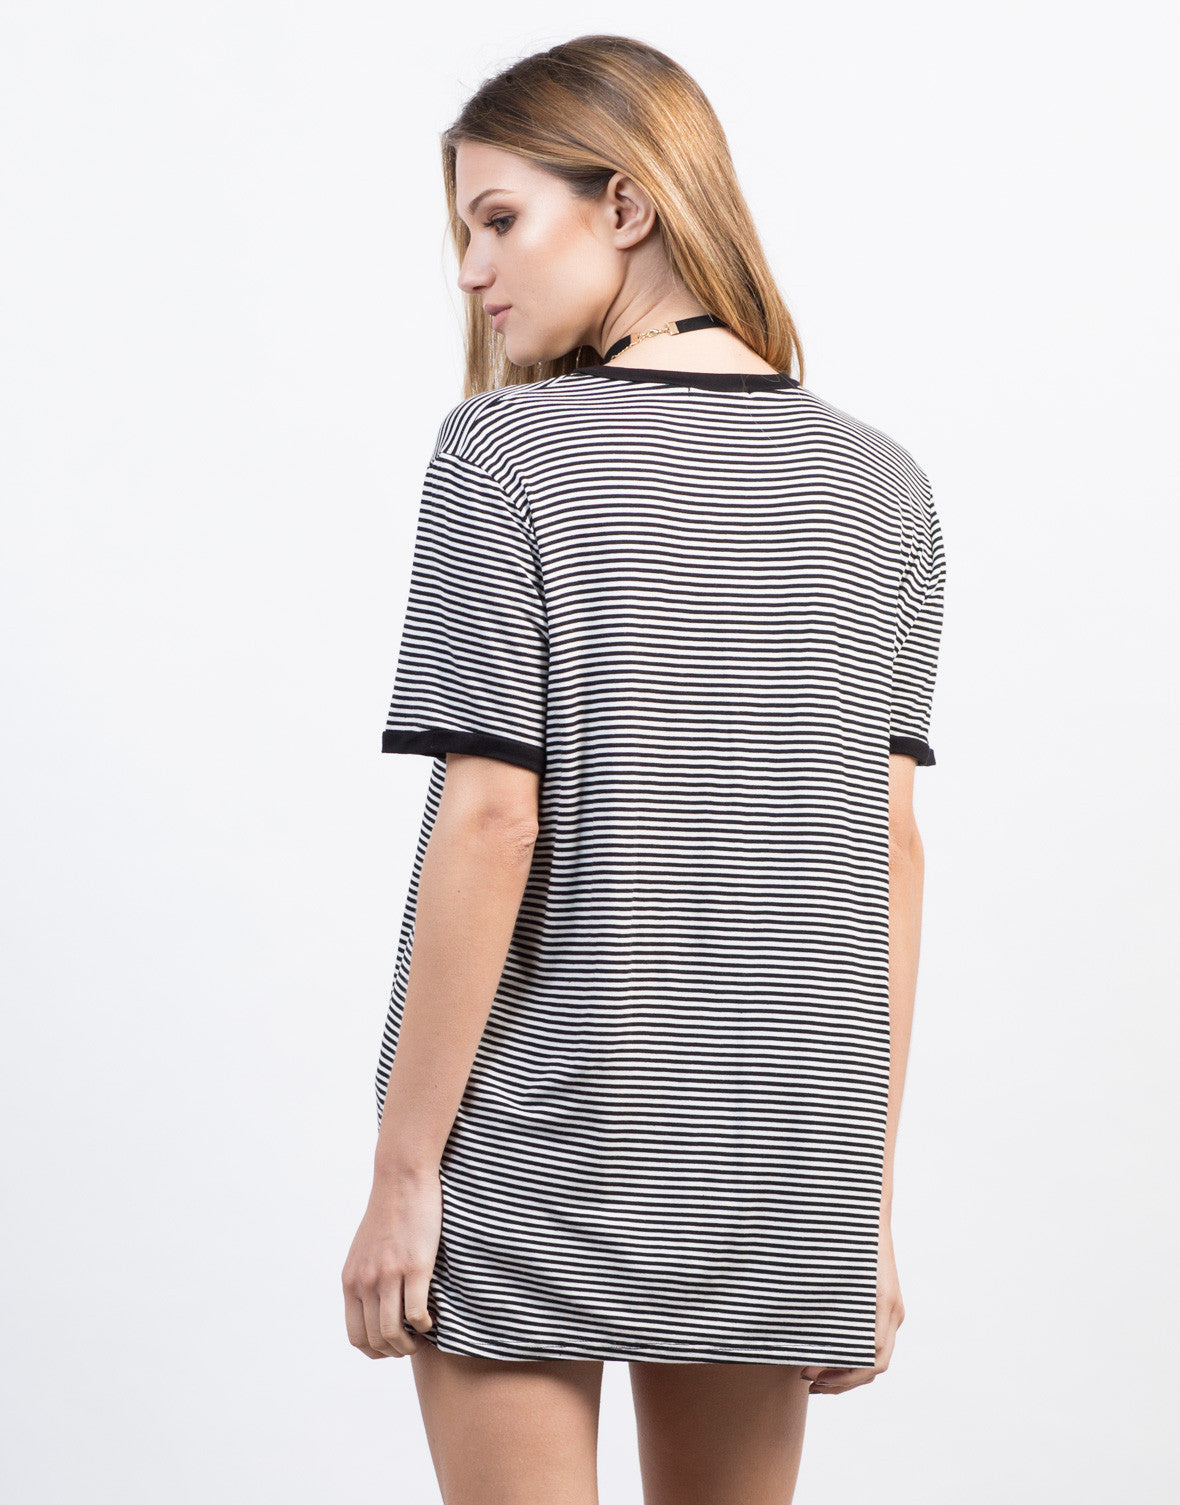 Back View of Solid Contrast Tunic Top